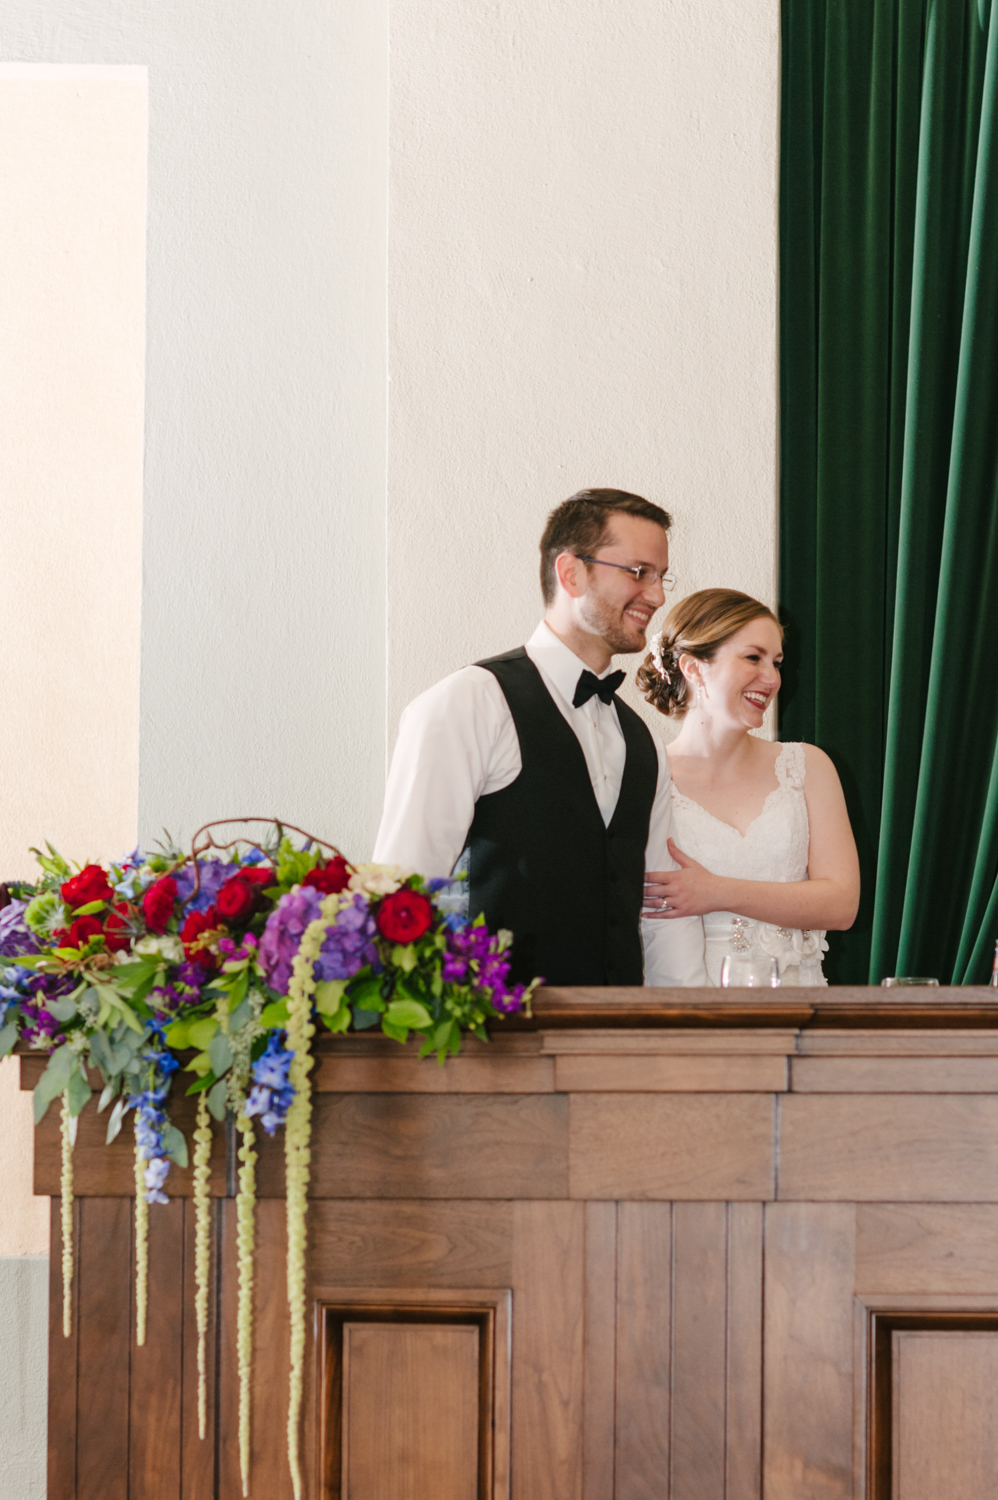 Dayton Old Courthouse Wedding Reception by Andrea Dozier Photography